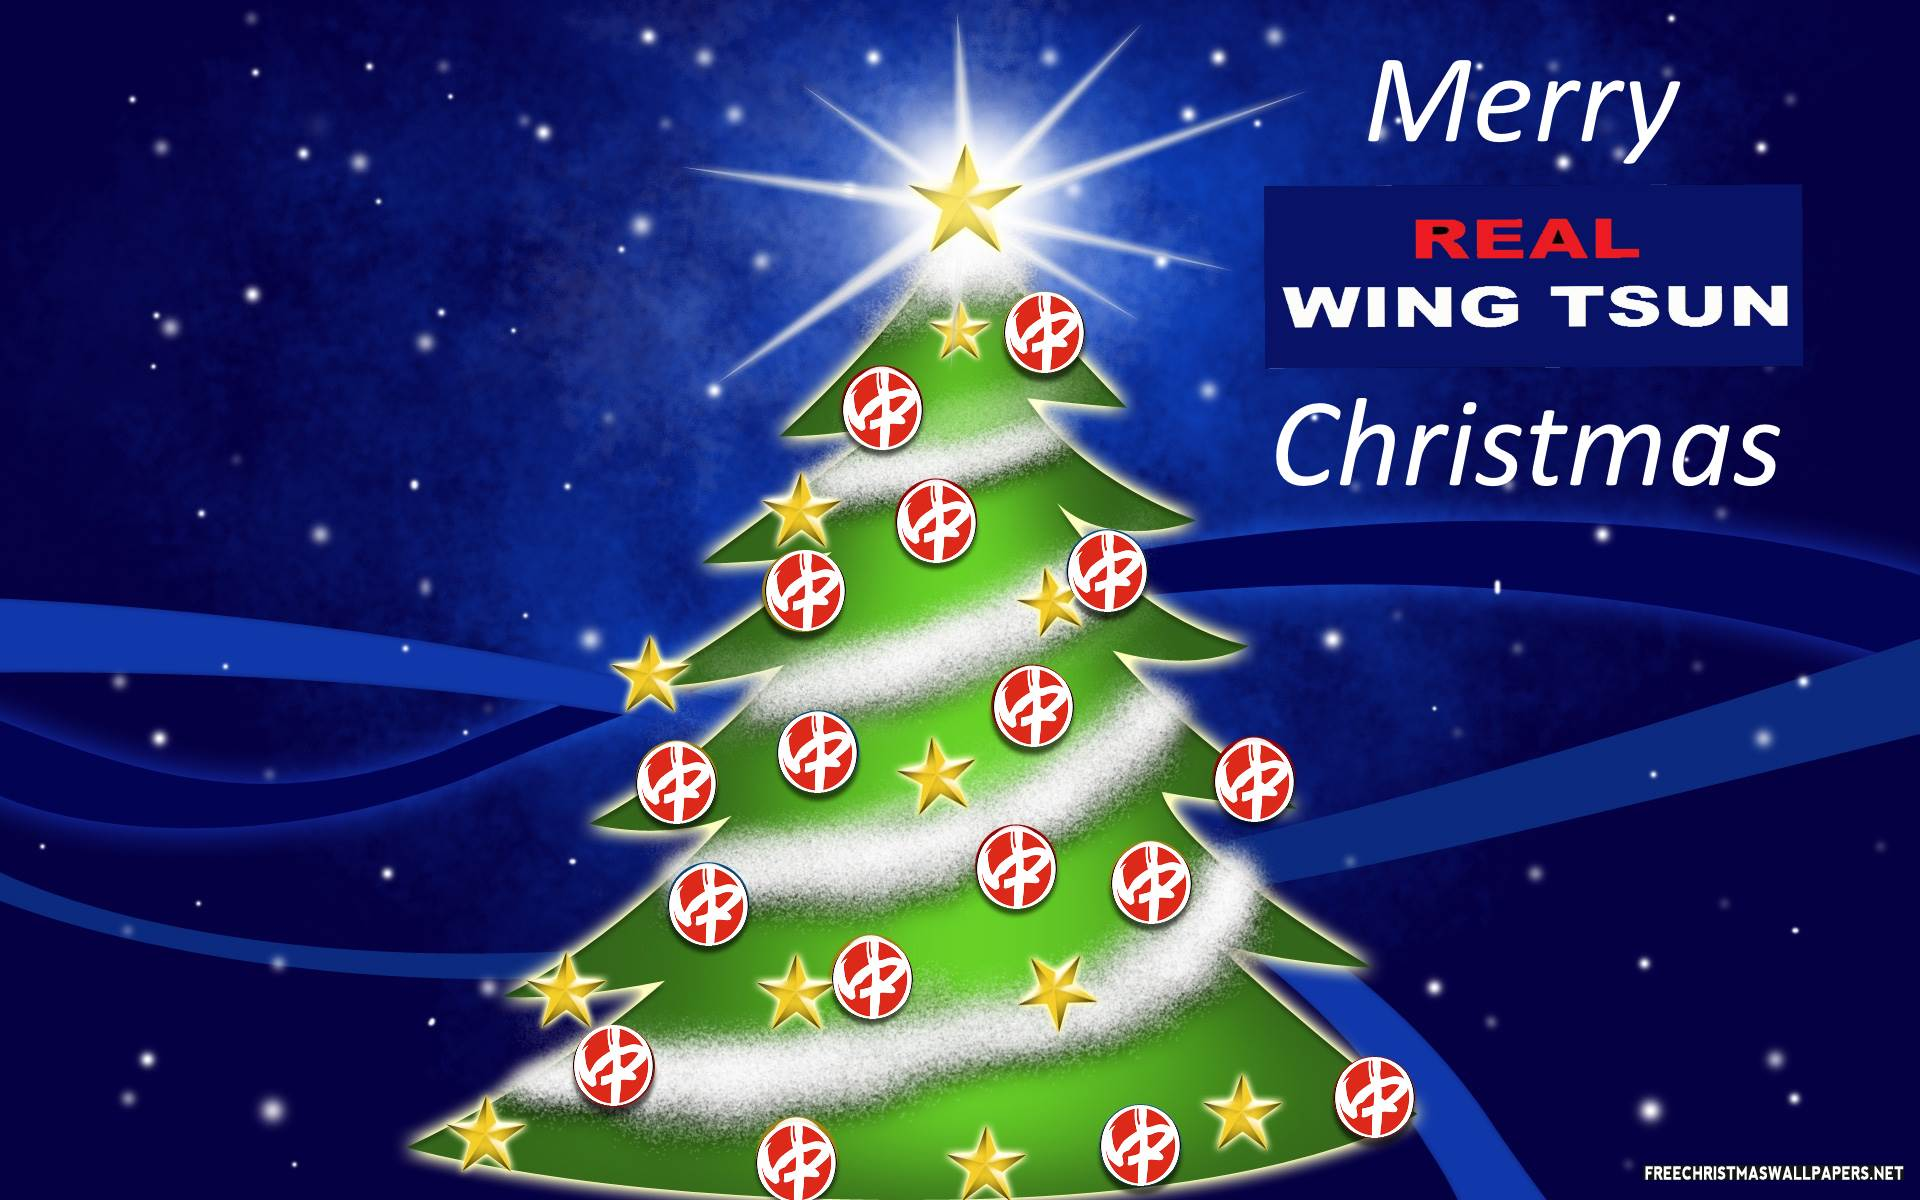 Merry Real Wing Tsun Christmas